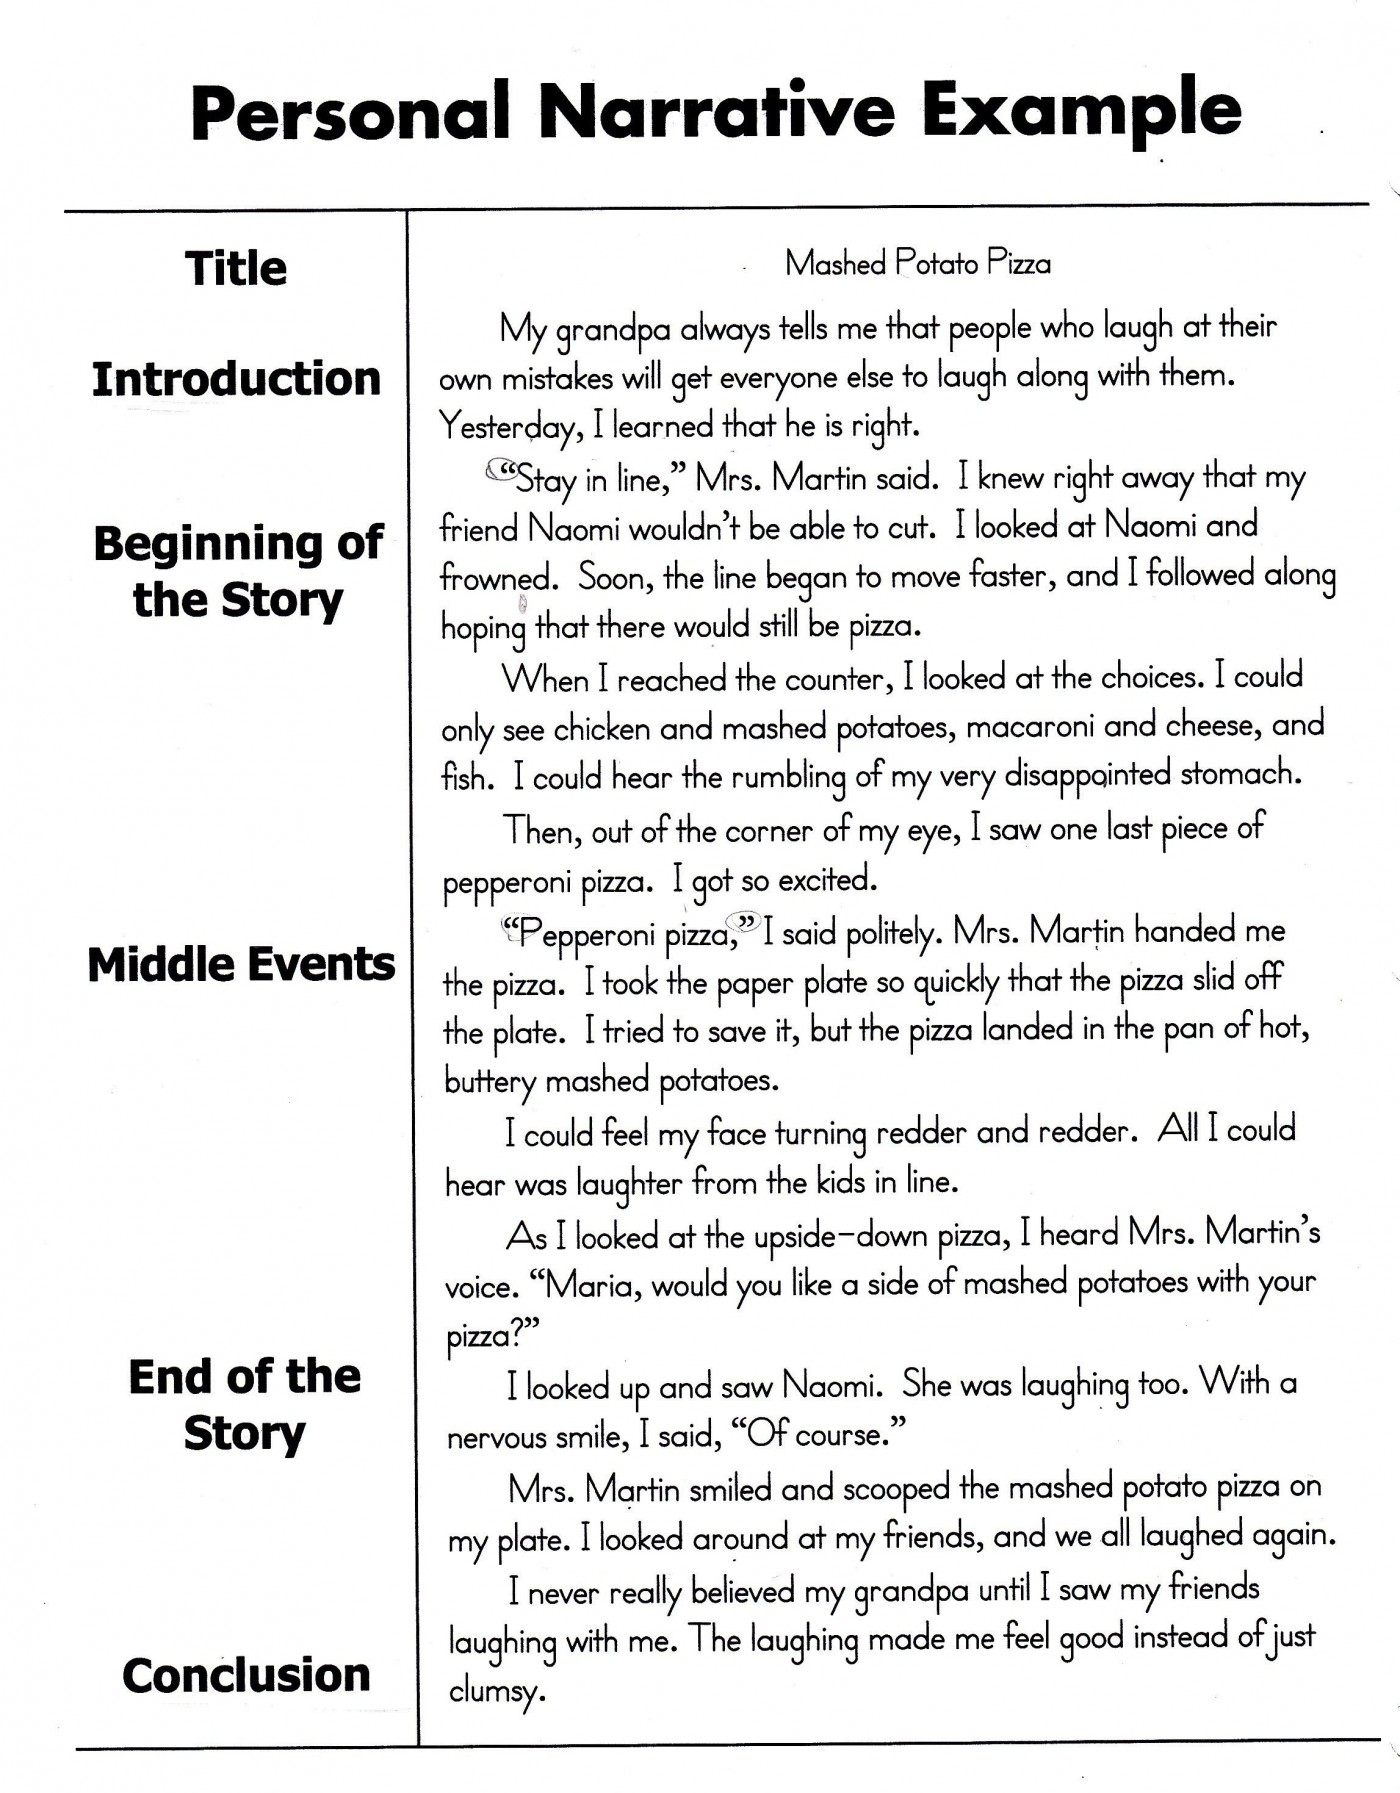 009 Essay Example Personal Narrative Writings And Essays How To Start Examples Write For 4th 5th Grade Oc Argumentative Middle School Conclusion Process Introduction Impressive Good About Yourself Pdf Descriptive 1400